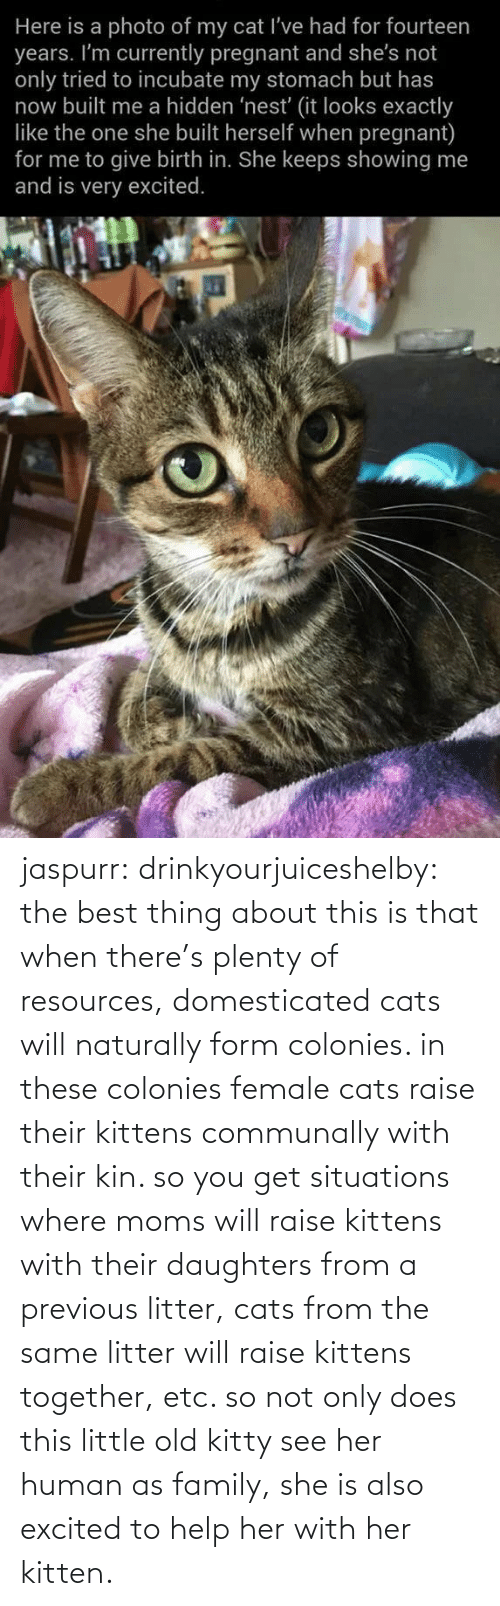 Previous: jaspurr:  drinkyourjuiceshelby:    the best thing about this is that when there's plenty of resources, domesticated cats will naturally form colonies. in these colonies female cats raise their kittens communally with their kin. so you get situations where moms will raise kittens with their daughters from a previous litter, cats from the same litter will raise kittens together, etc. so not only does this little old kitty see her human as family, she is also excited to help her with her kitten.